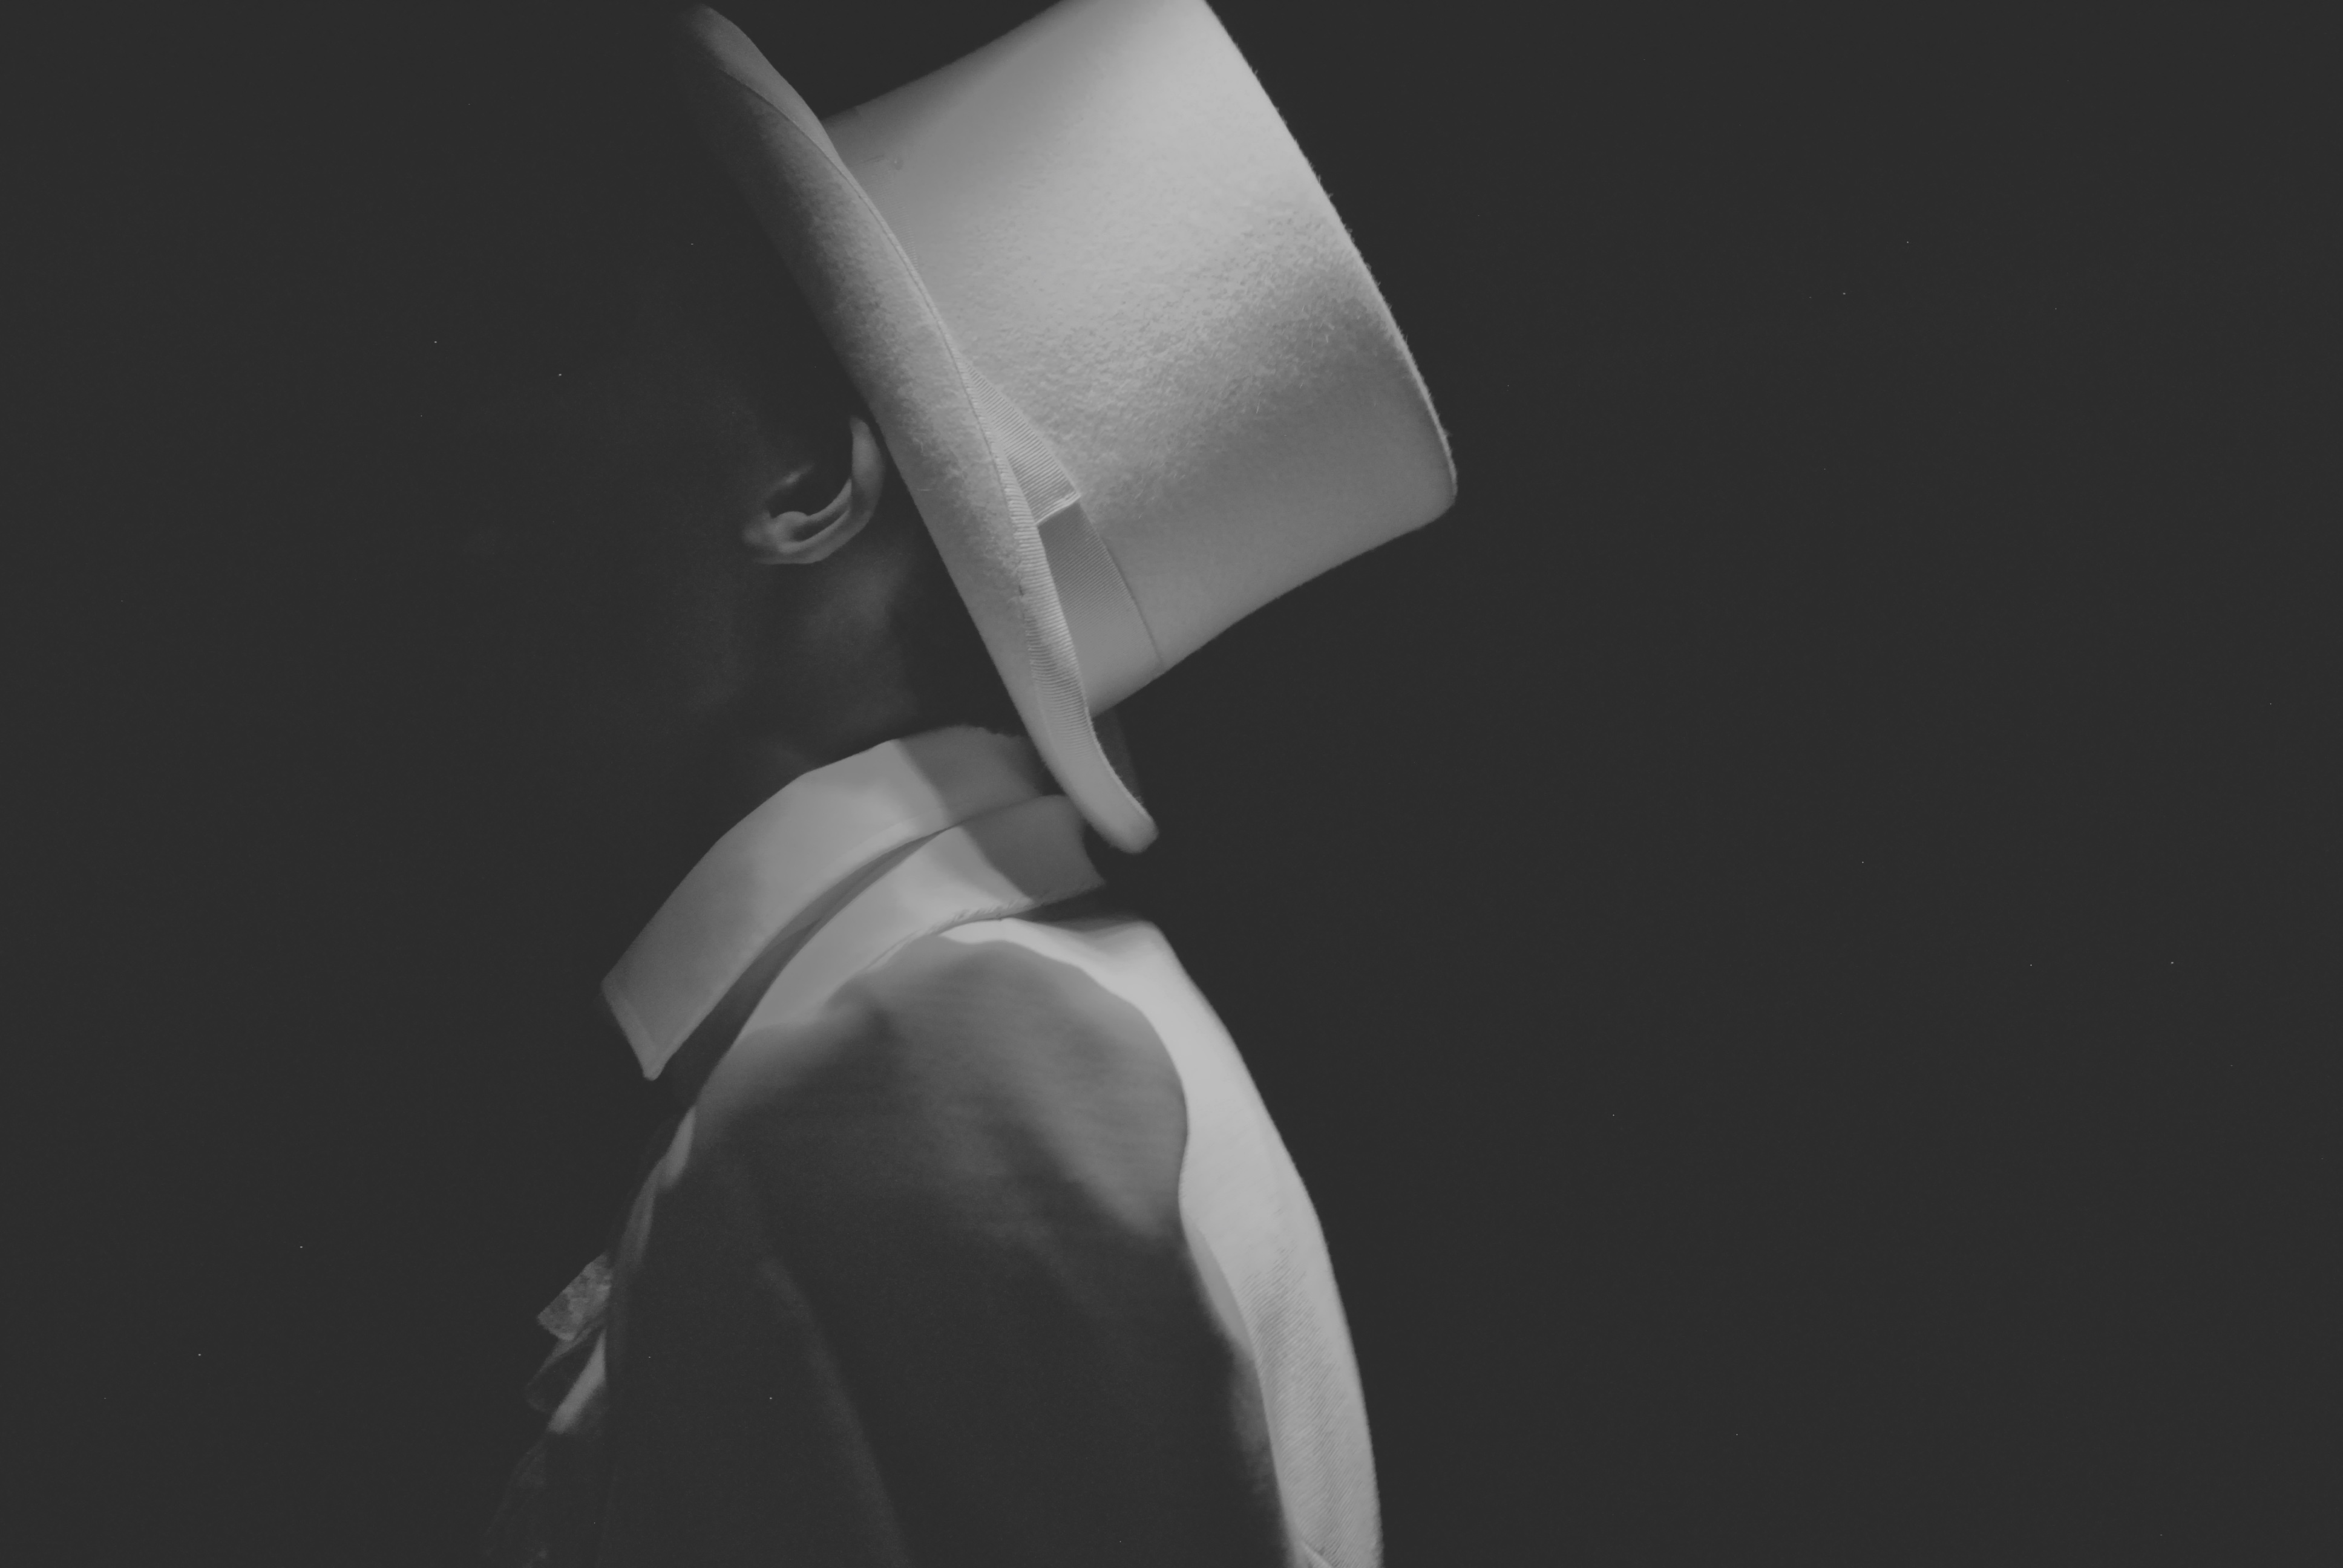 Man Wearing White Hat Greyscale Photography Free Stock Photo